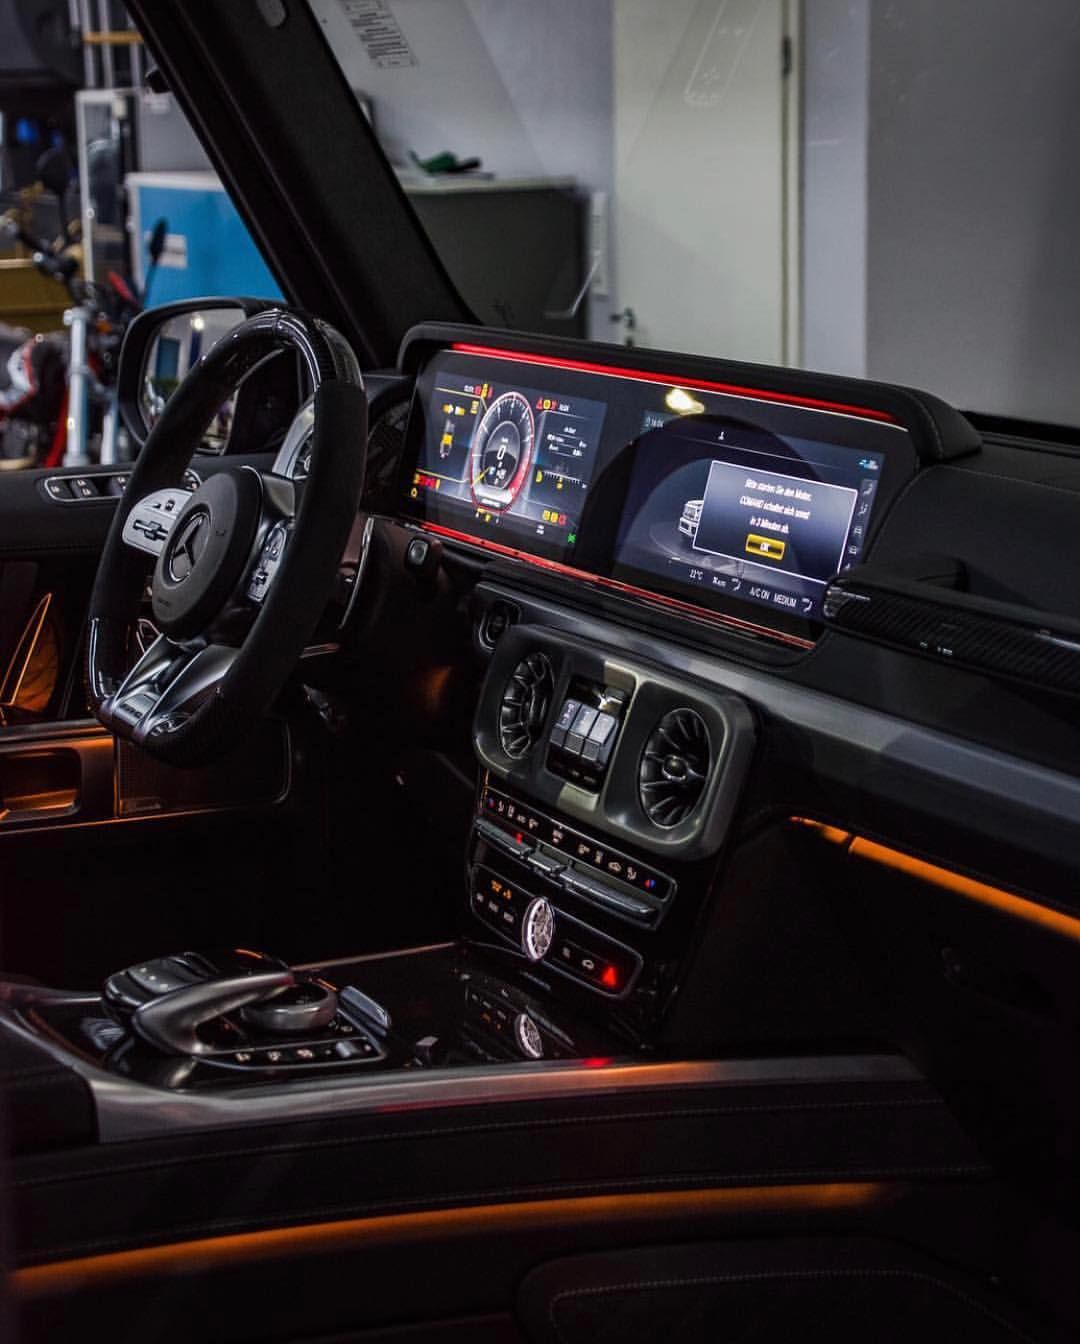 Mercedes Benz G Class Interior G63world On Instagram Best In Class By S M H R Mercedes Interior Mercedes Benz G Class Mercedes Car